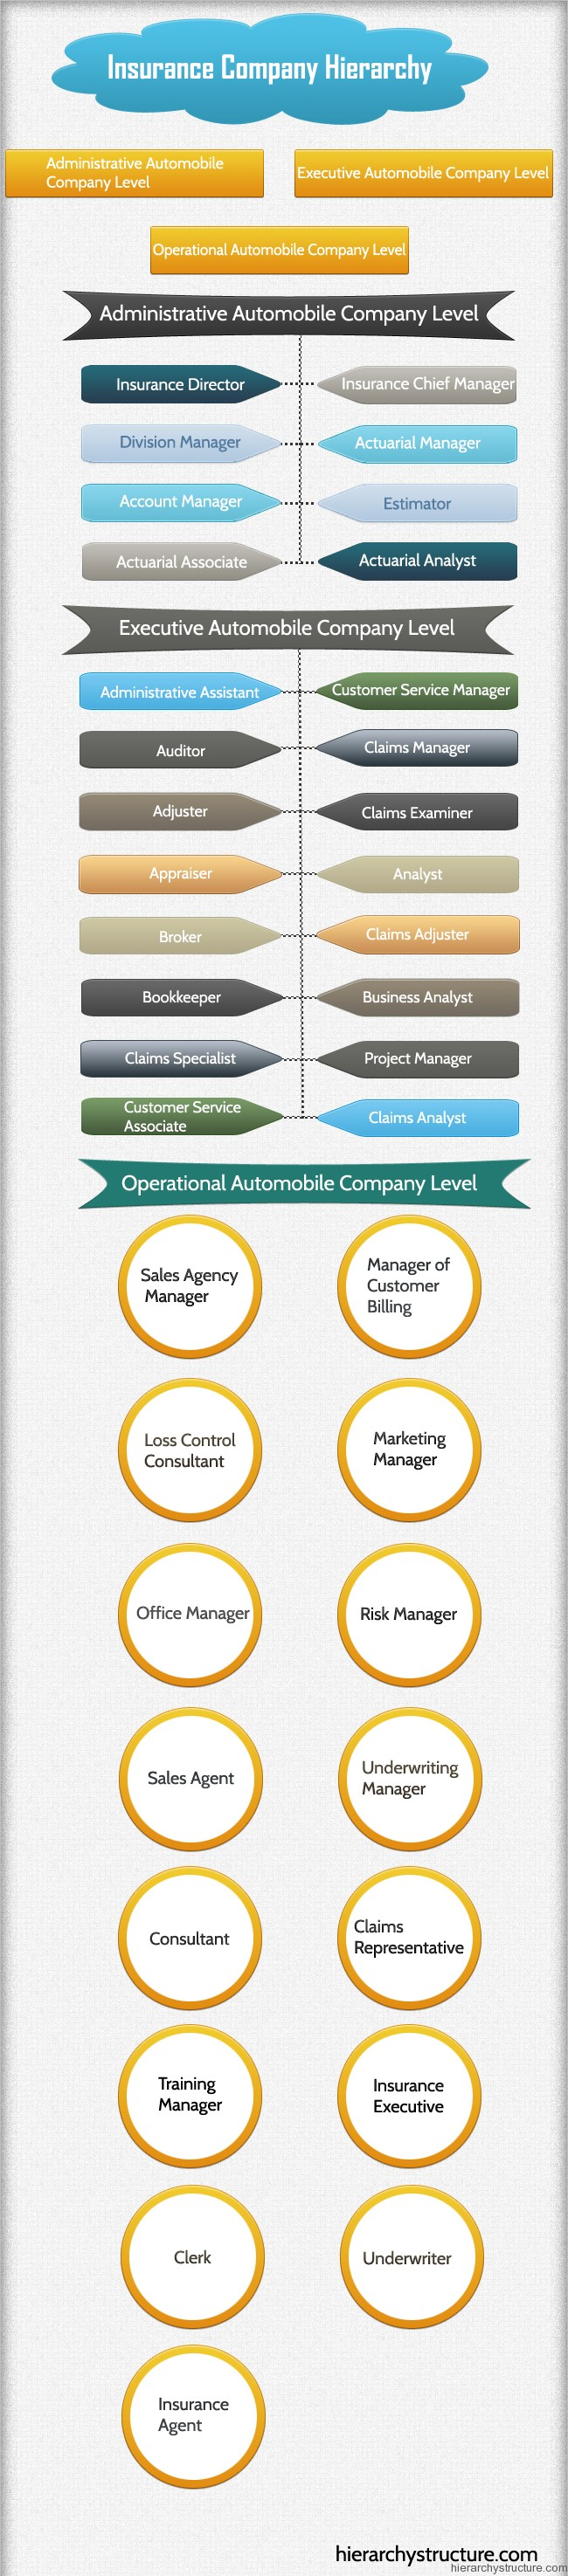 Insurance Company Hierarchy